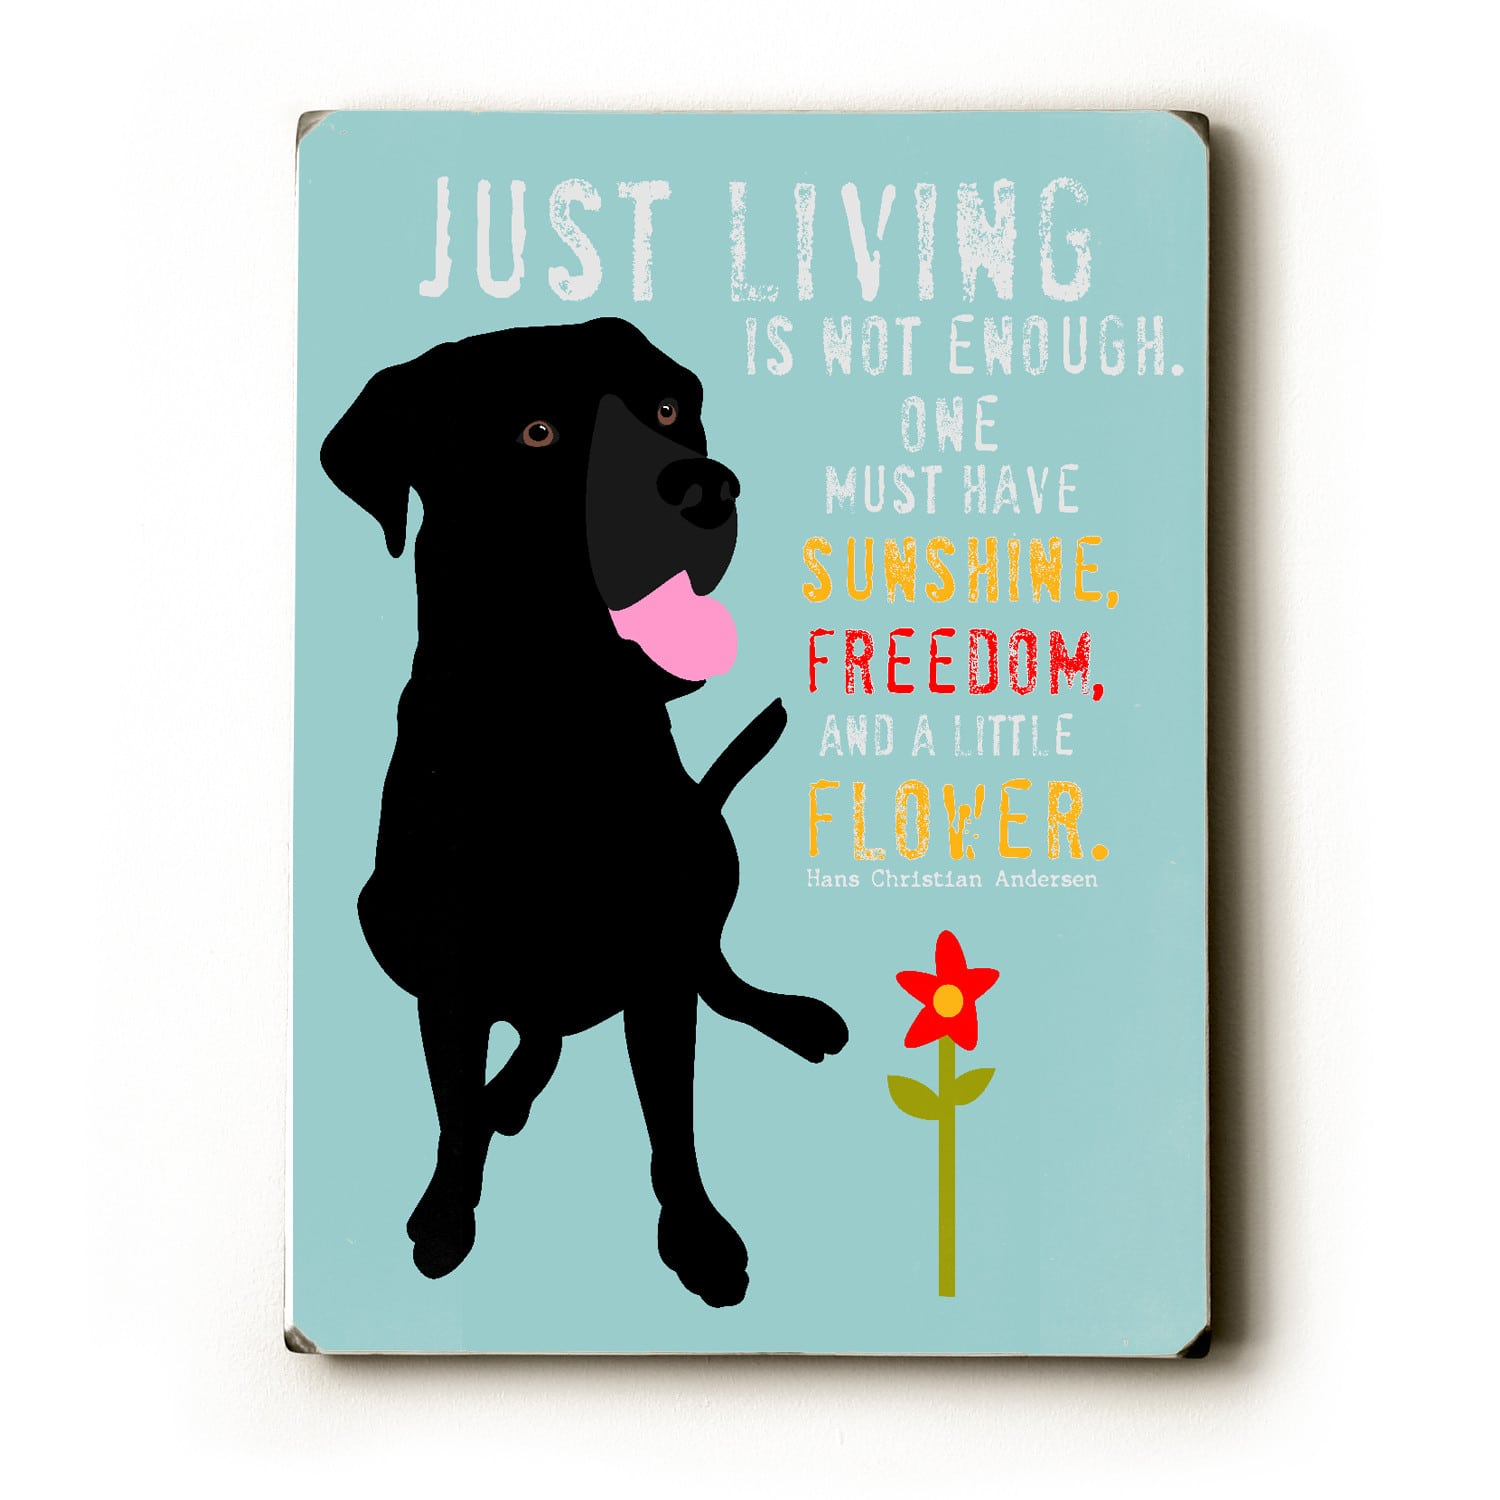 """Just living is not enough, one must have sunshine, freedom, and a little flower."" (Hans Christian Andersen) - Dog signs with inspirational quotes. Dog print on wood sign. Gifts for dog lovers."